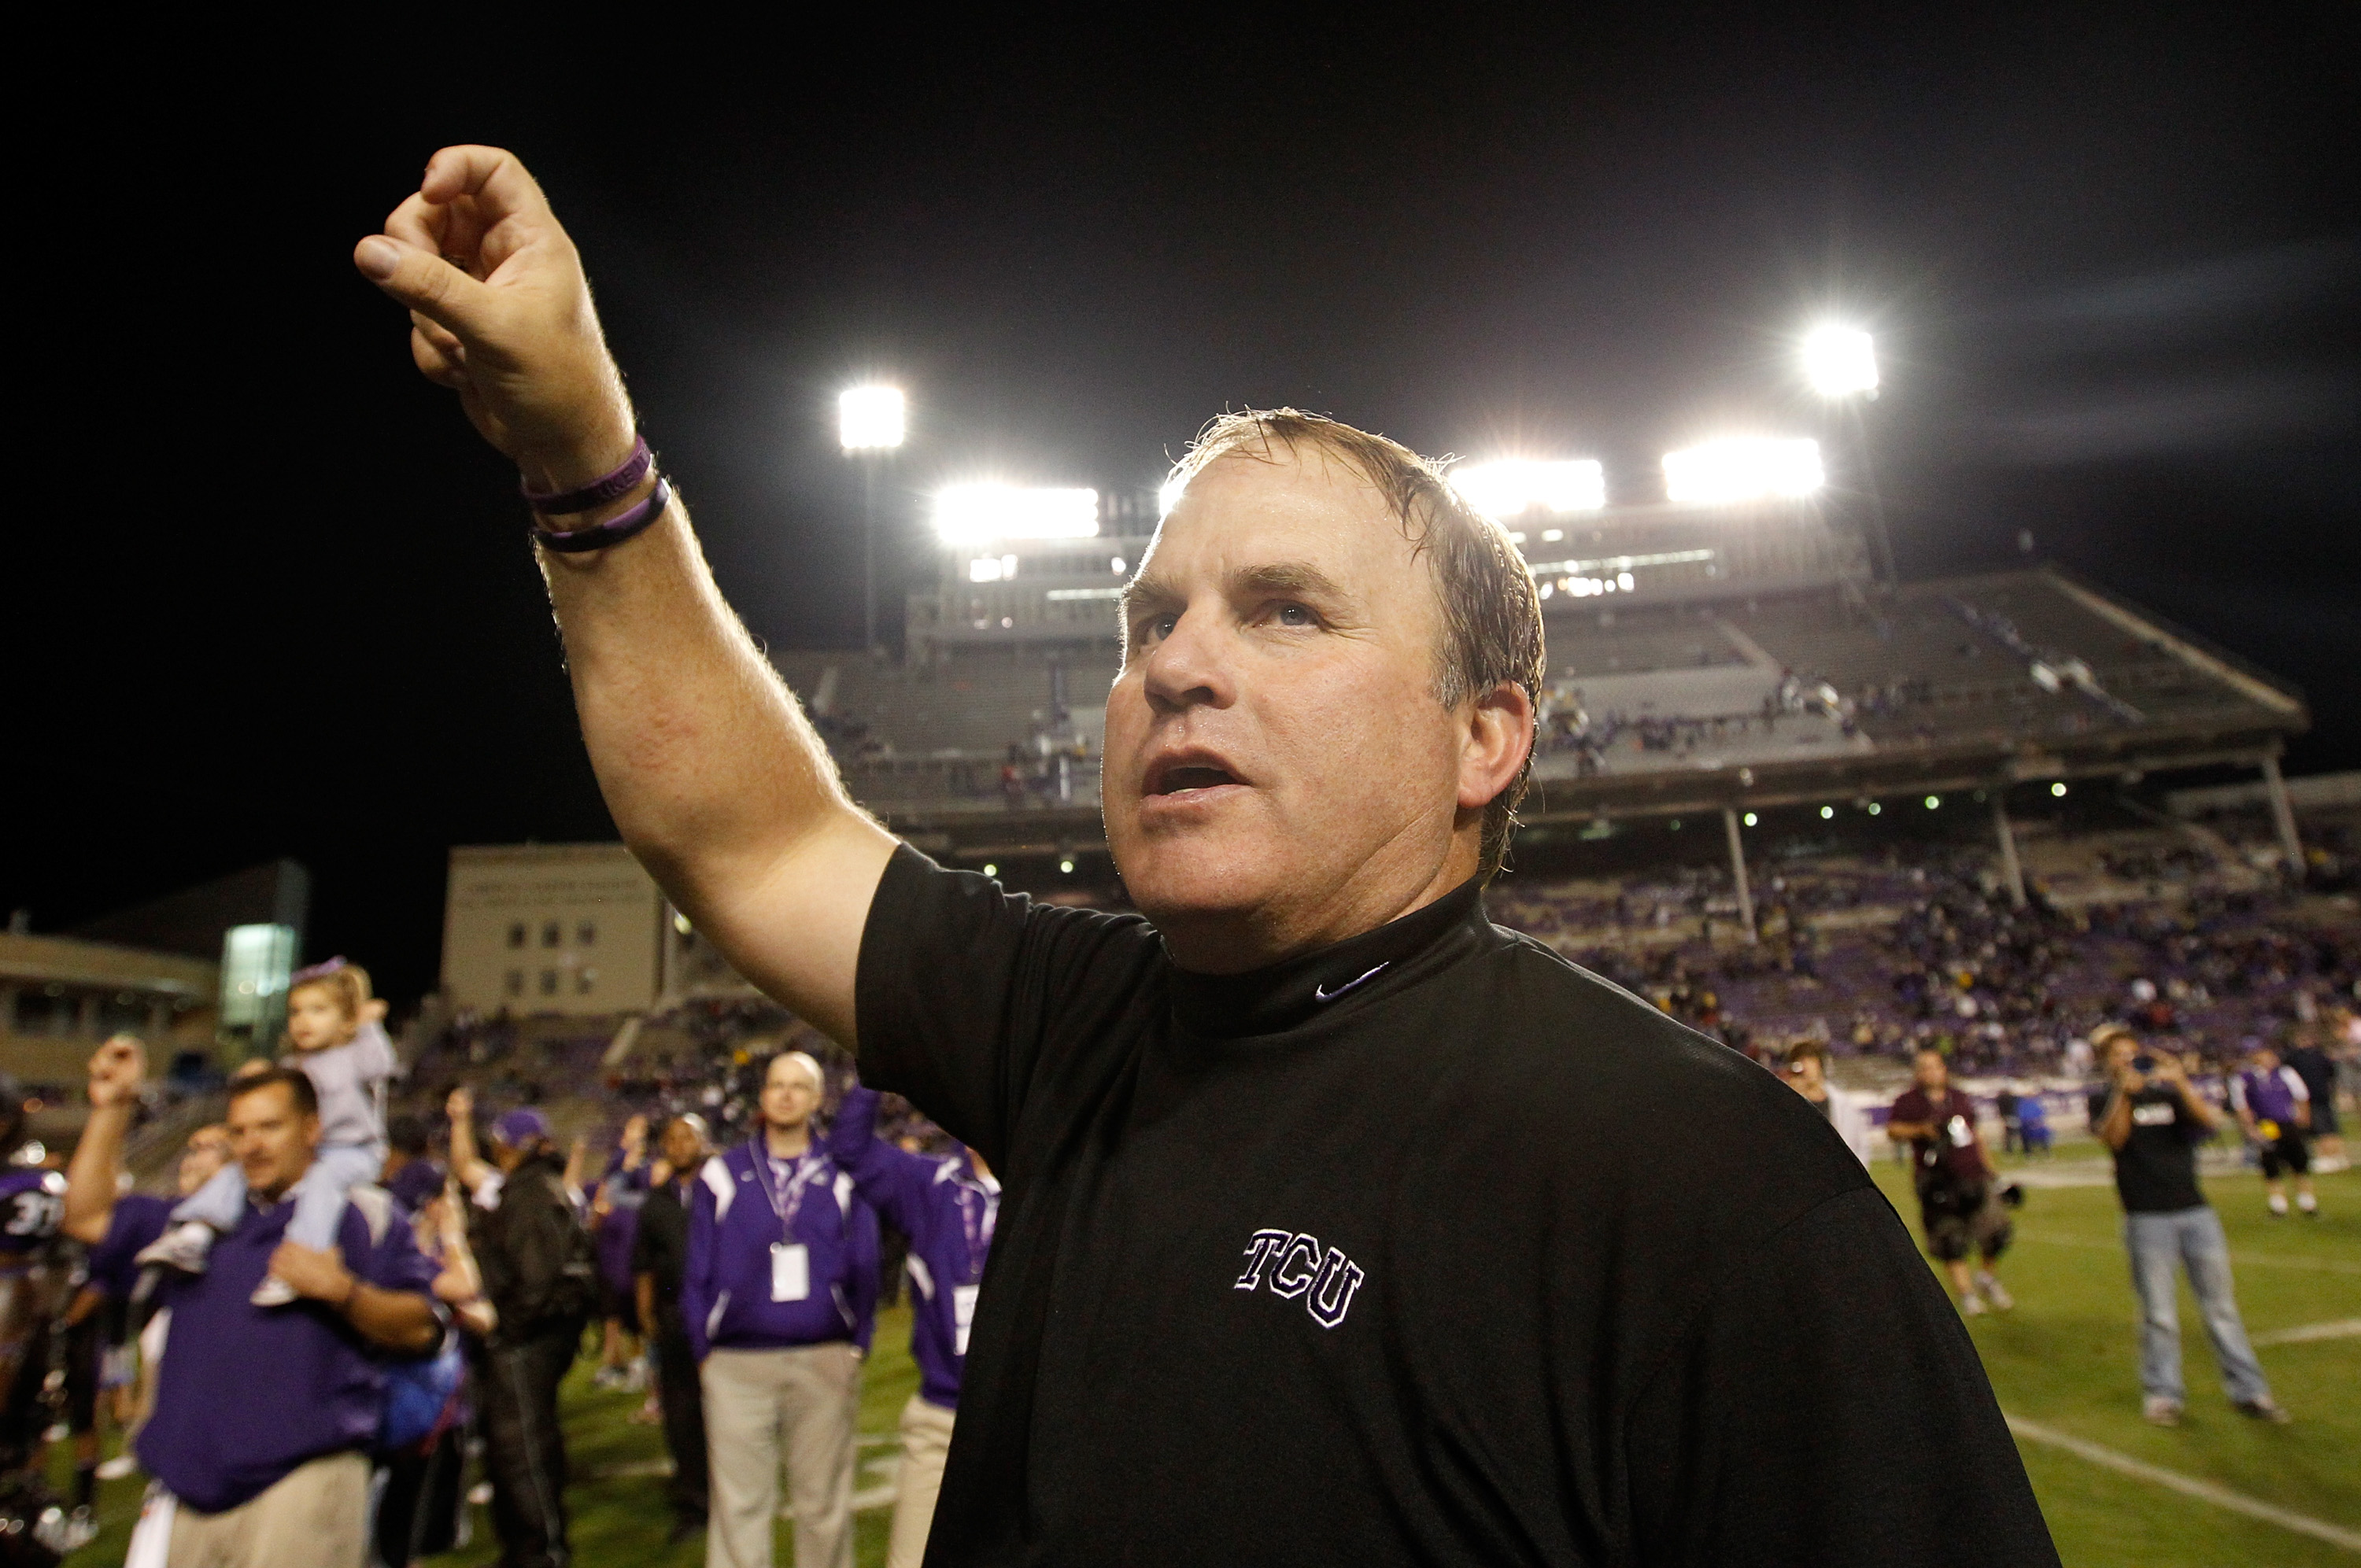 FORT WORTH, TX - OCTOBER 23:  Head coach Gary Patterson of the TCU Horned Frogs celebrates on the field after TCU beat the Air Force Falcons 38-7 at Amon G. Carter Stadium on October 23, 2010 in Fort Worth, Texas.  (Photo by Tom Pennington/Getty Images)